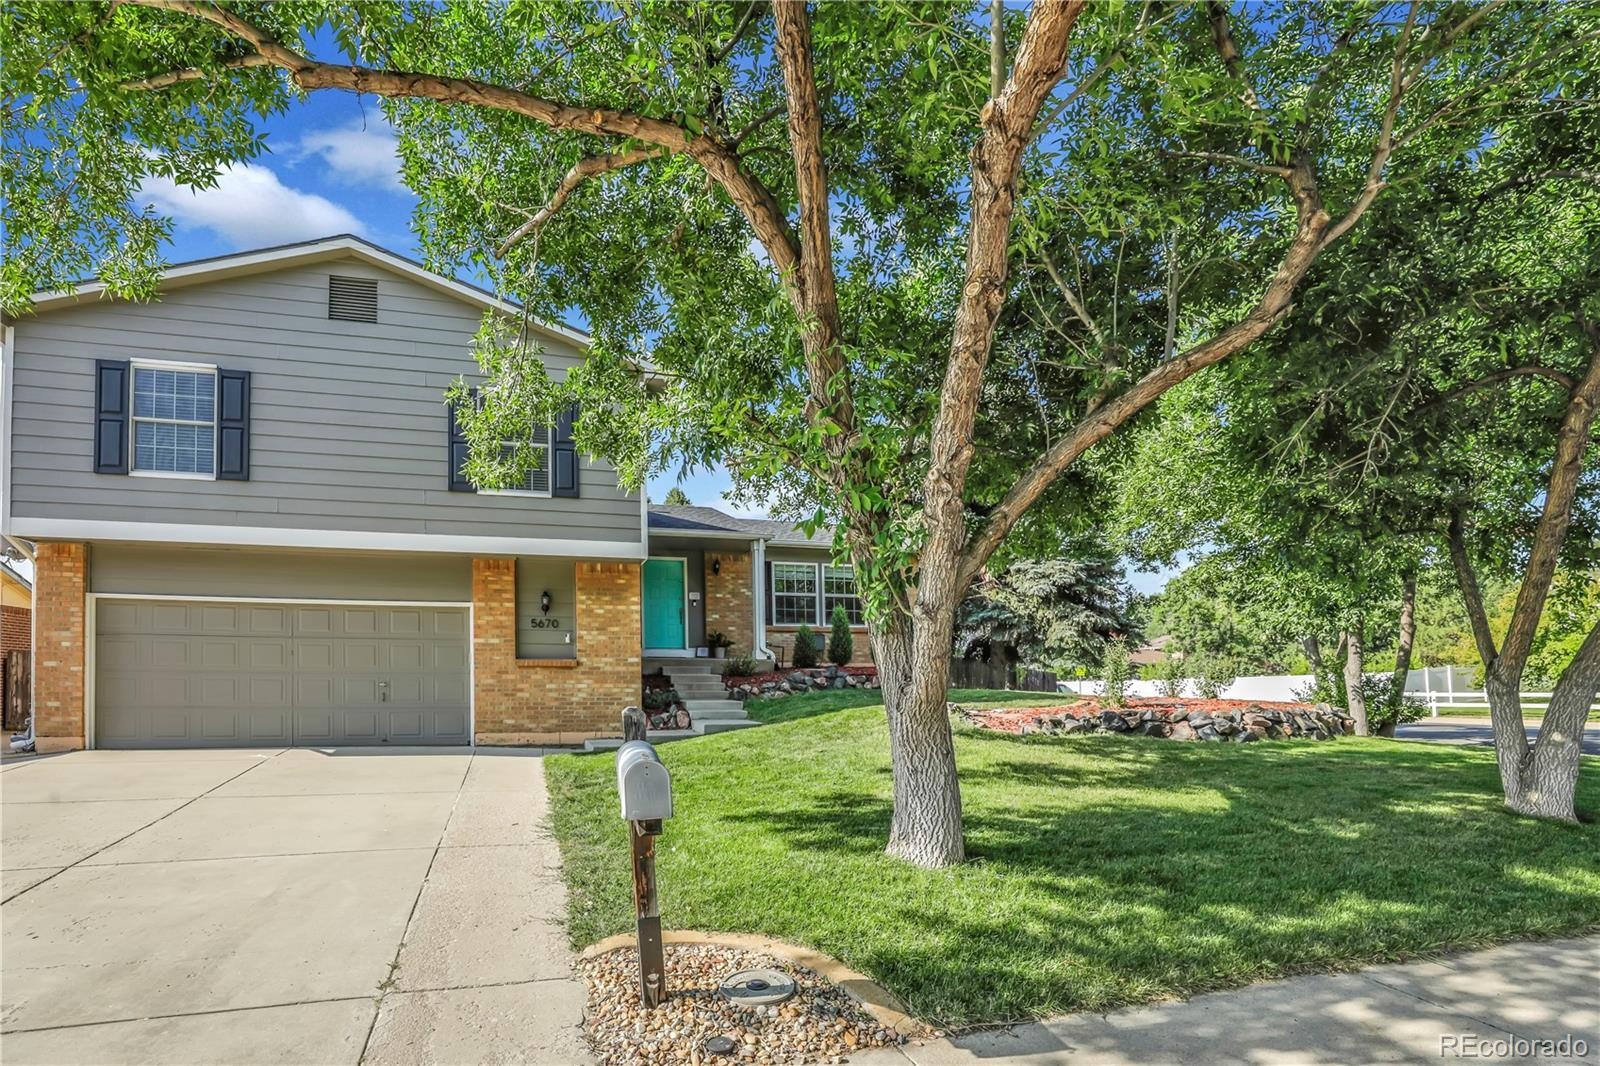 5670 W 110th Place, Westminster, CO 80020 - #: 2232940